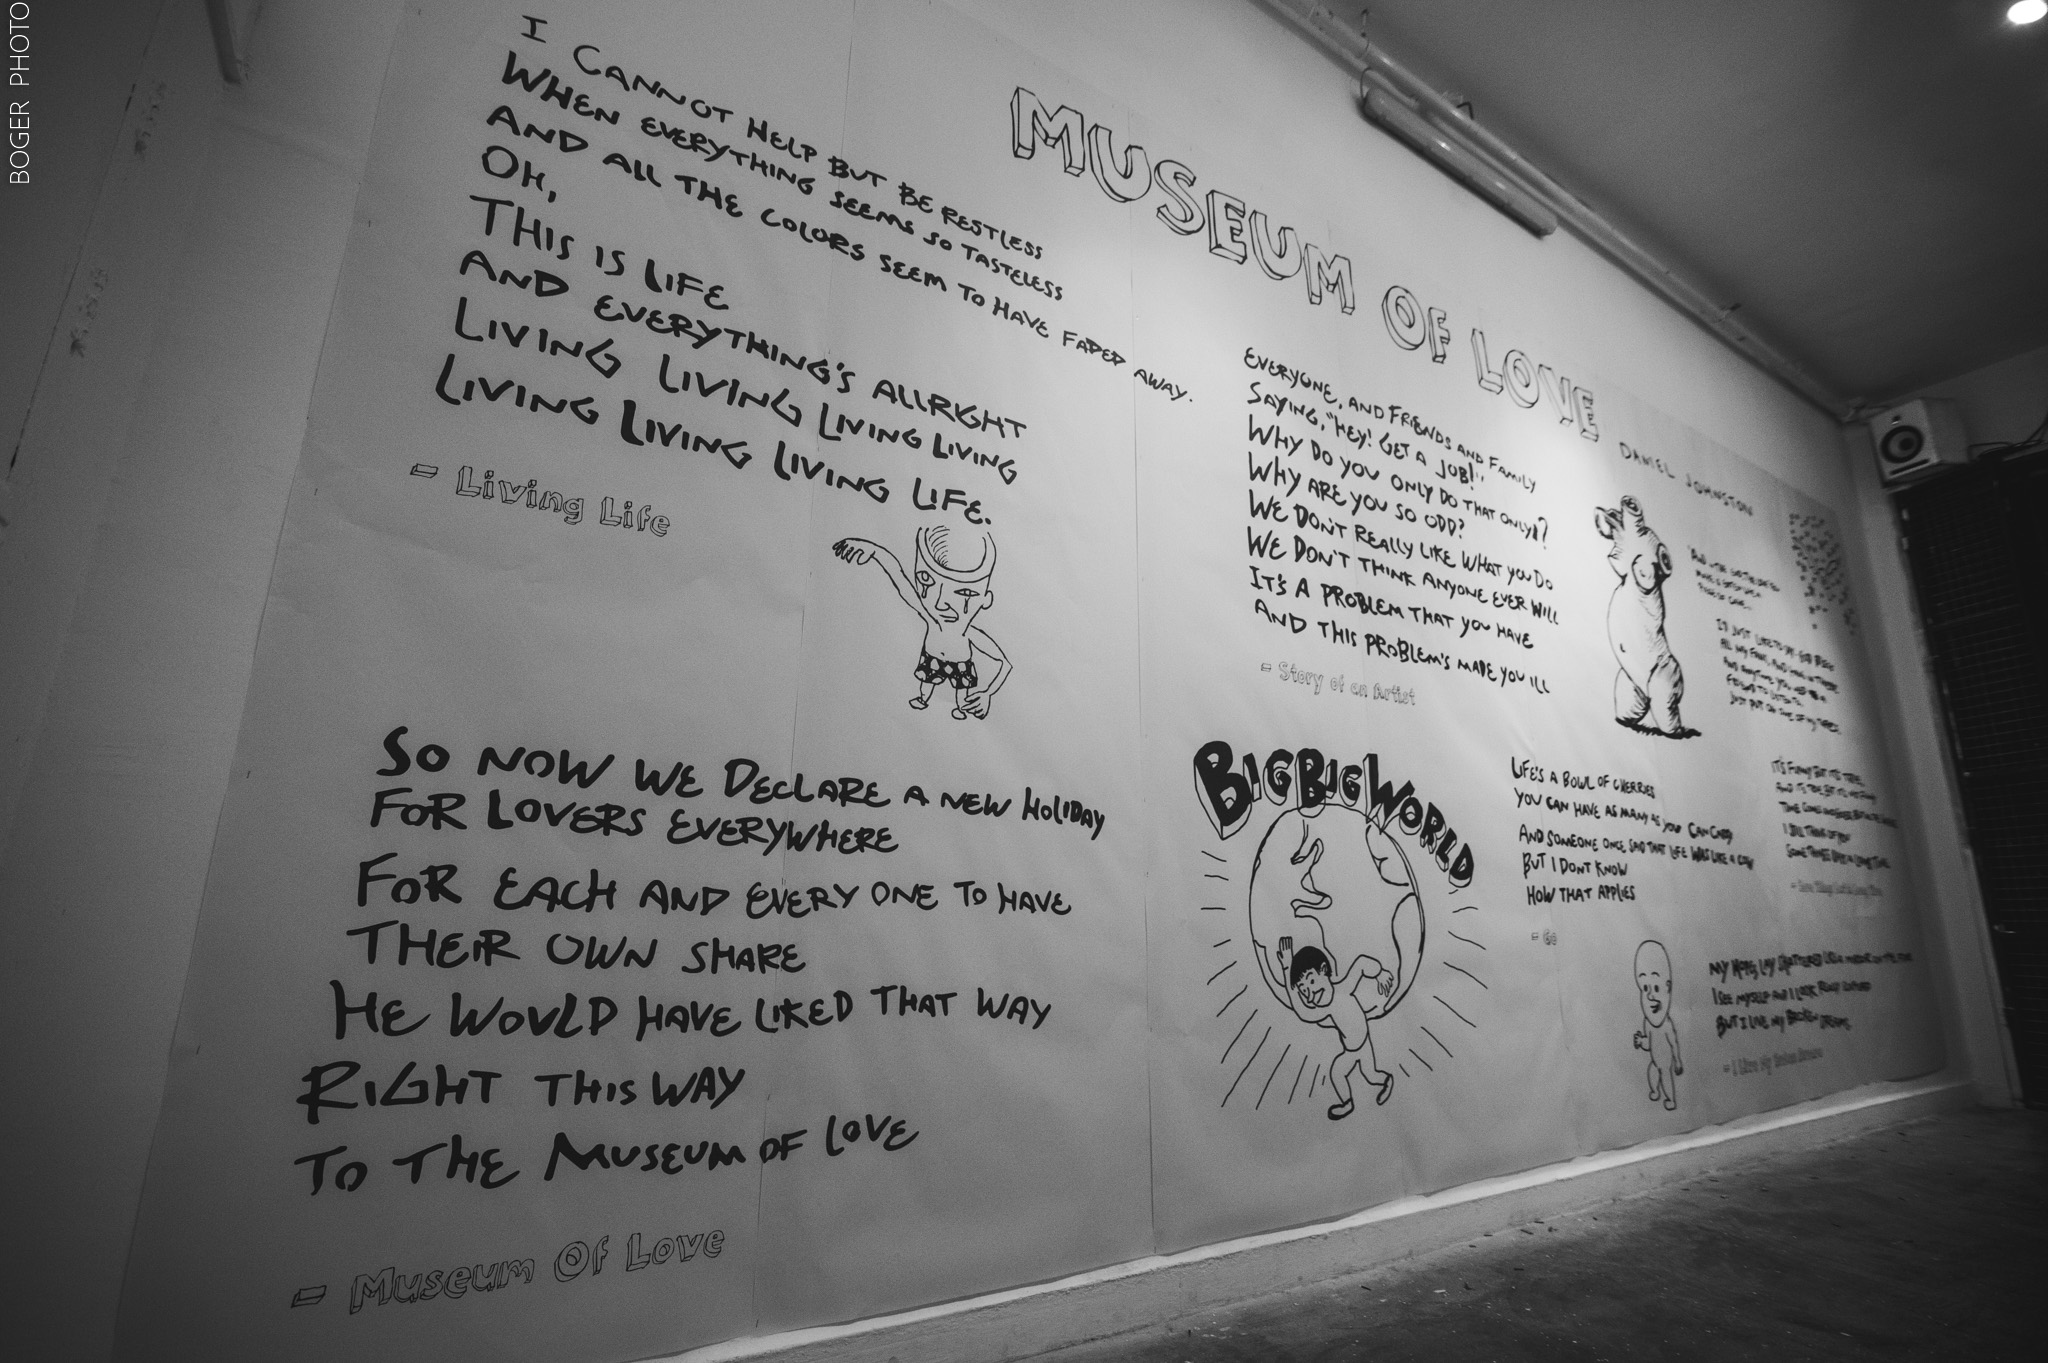 Daniel Johnston's Tribute. Credit: Yonathan Boger